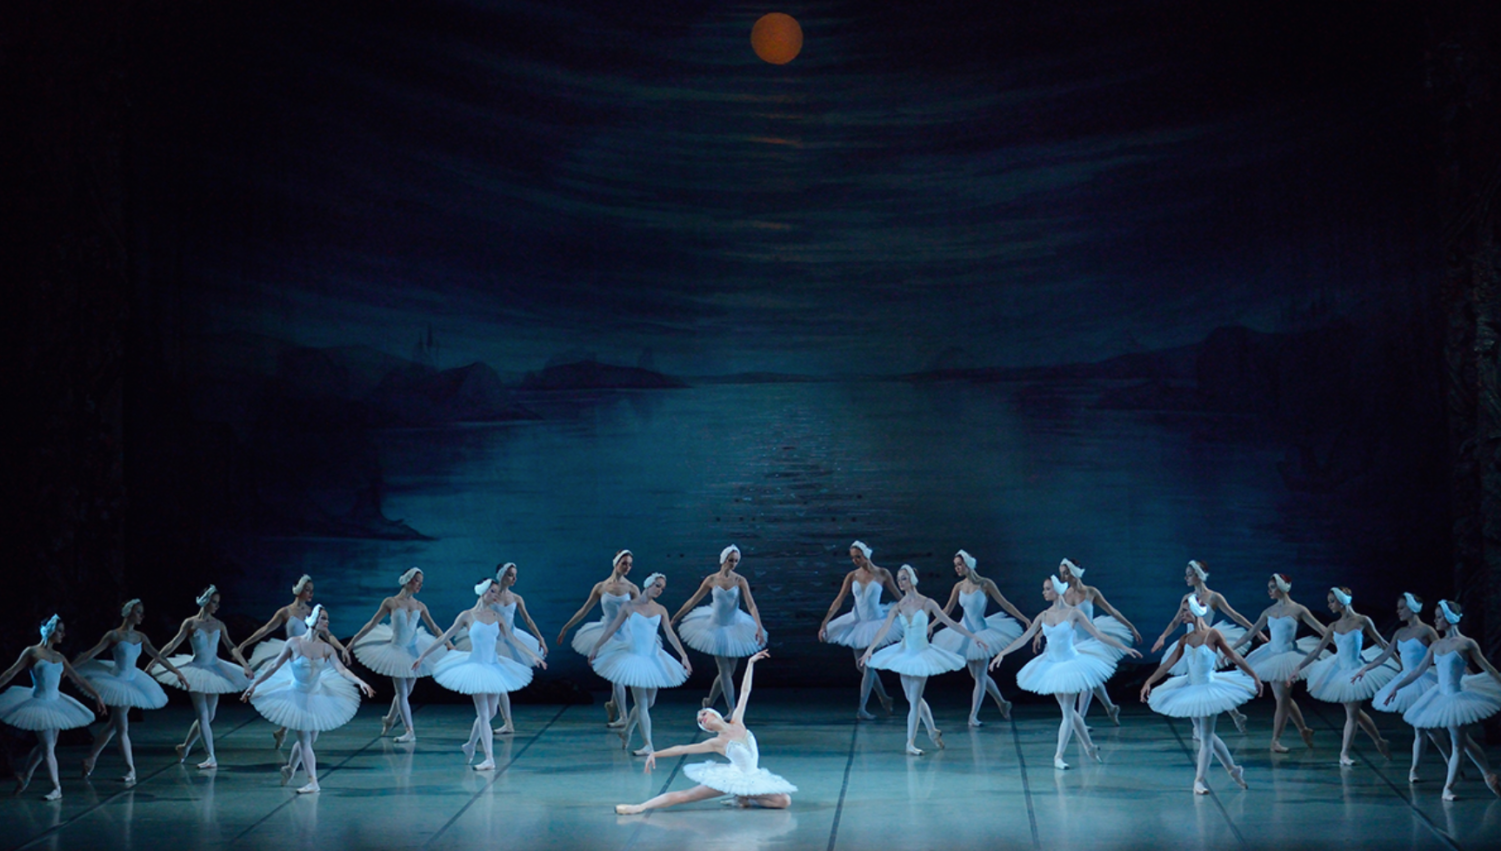 Reprinted with permission from the Russian Grand Ballet.